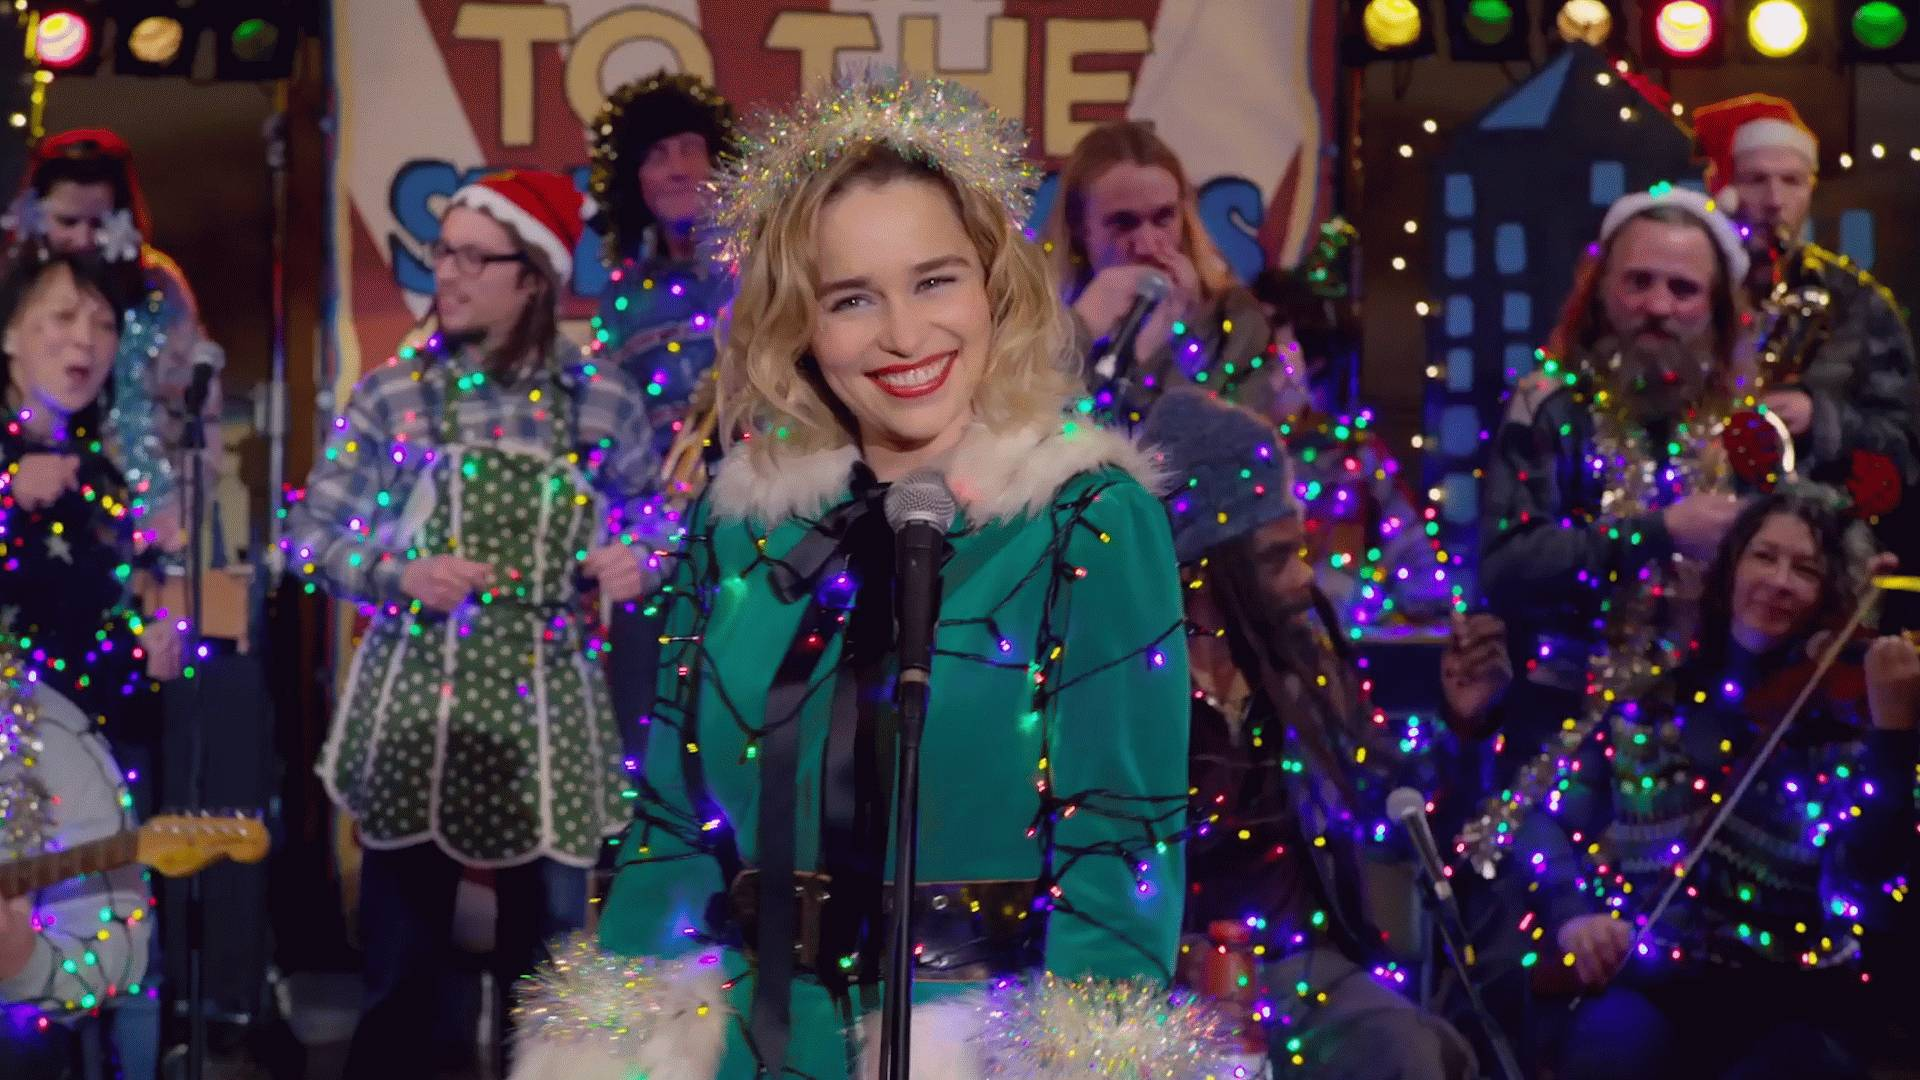 Forget The Negative Reviews, Last Christmas Is A Festive Treat With Very Real Modern-Day Themes At Its Heart